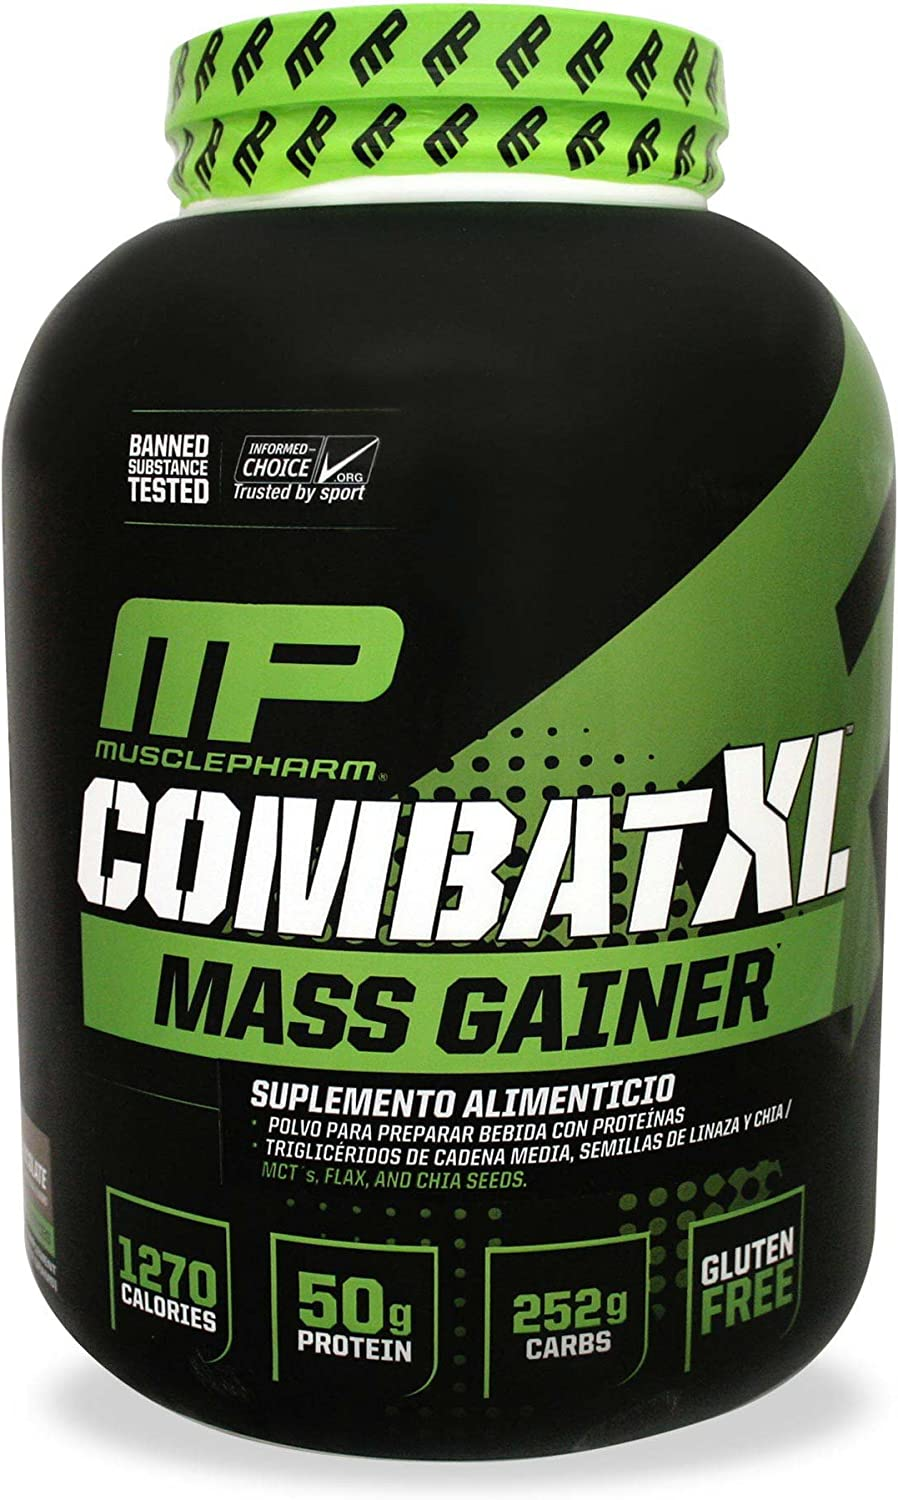 MusclePharm Combat XL Mass-Gainer Powder, Weight Gainer Protein Powder, 1270 Calories per Serving, 50 Grams of Protein, MCTS Flax and Chia Seeds, ...